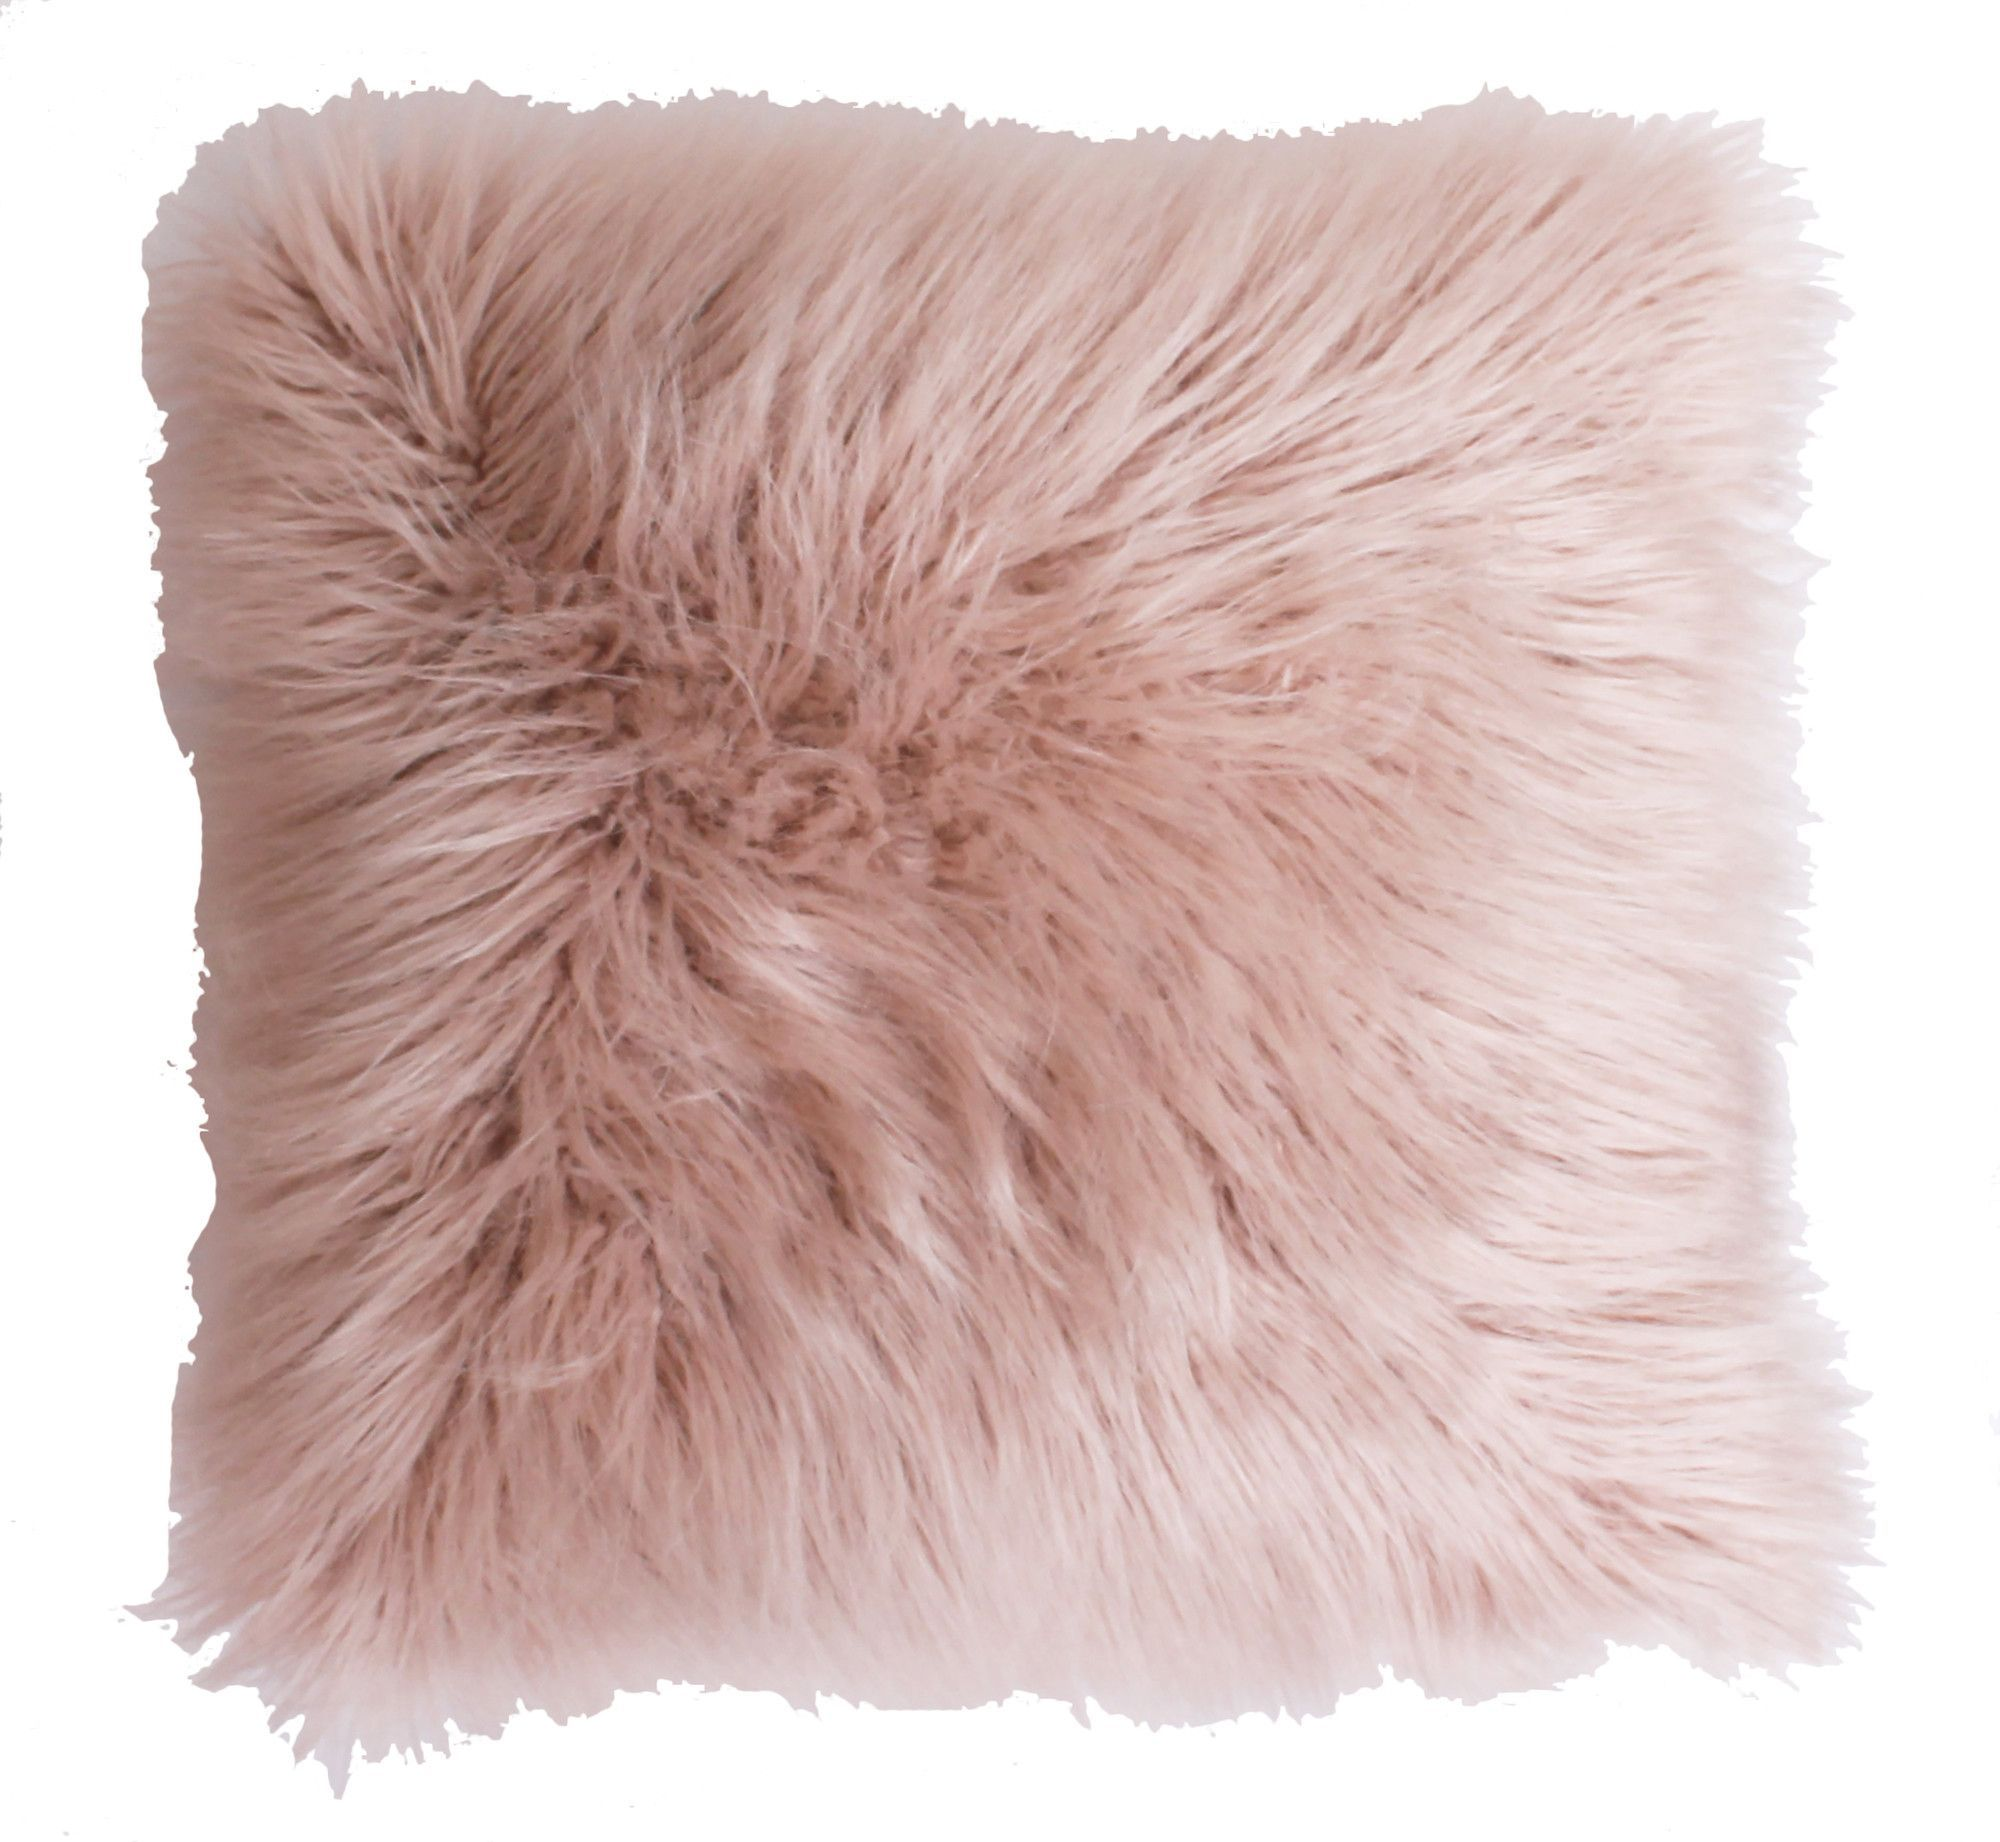 view cozy qlt pillow faux nomad shop constrain redesign zoom mudcloth throw h fur fit hei slide